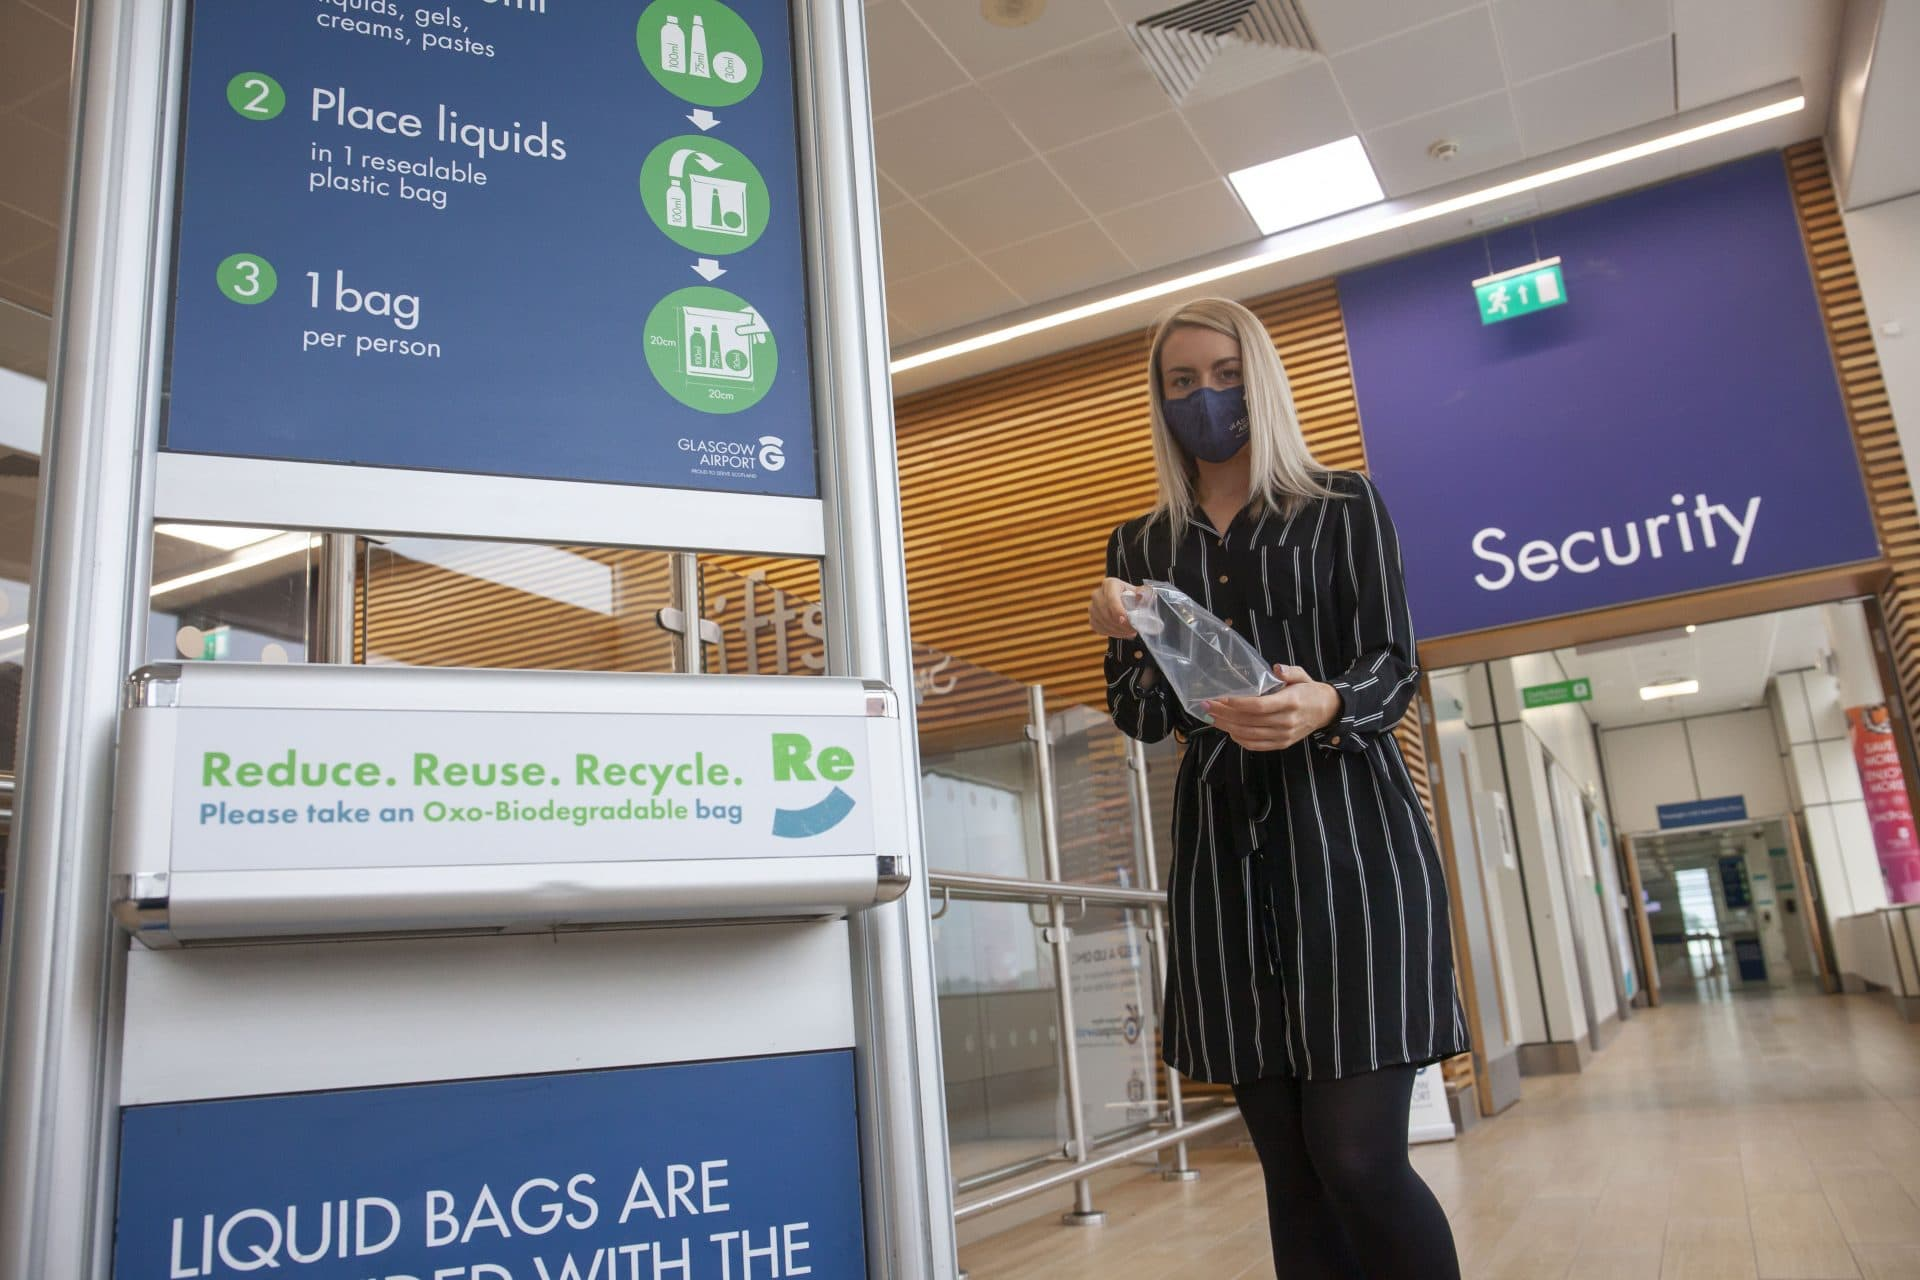 AGS Airports launches new sustainable security bags